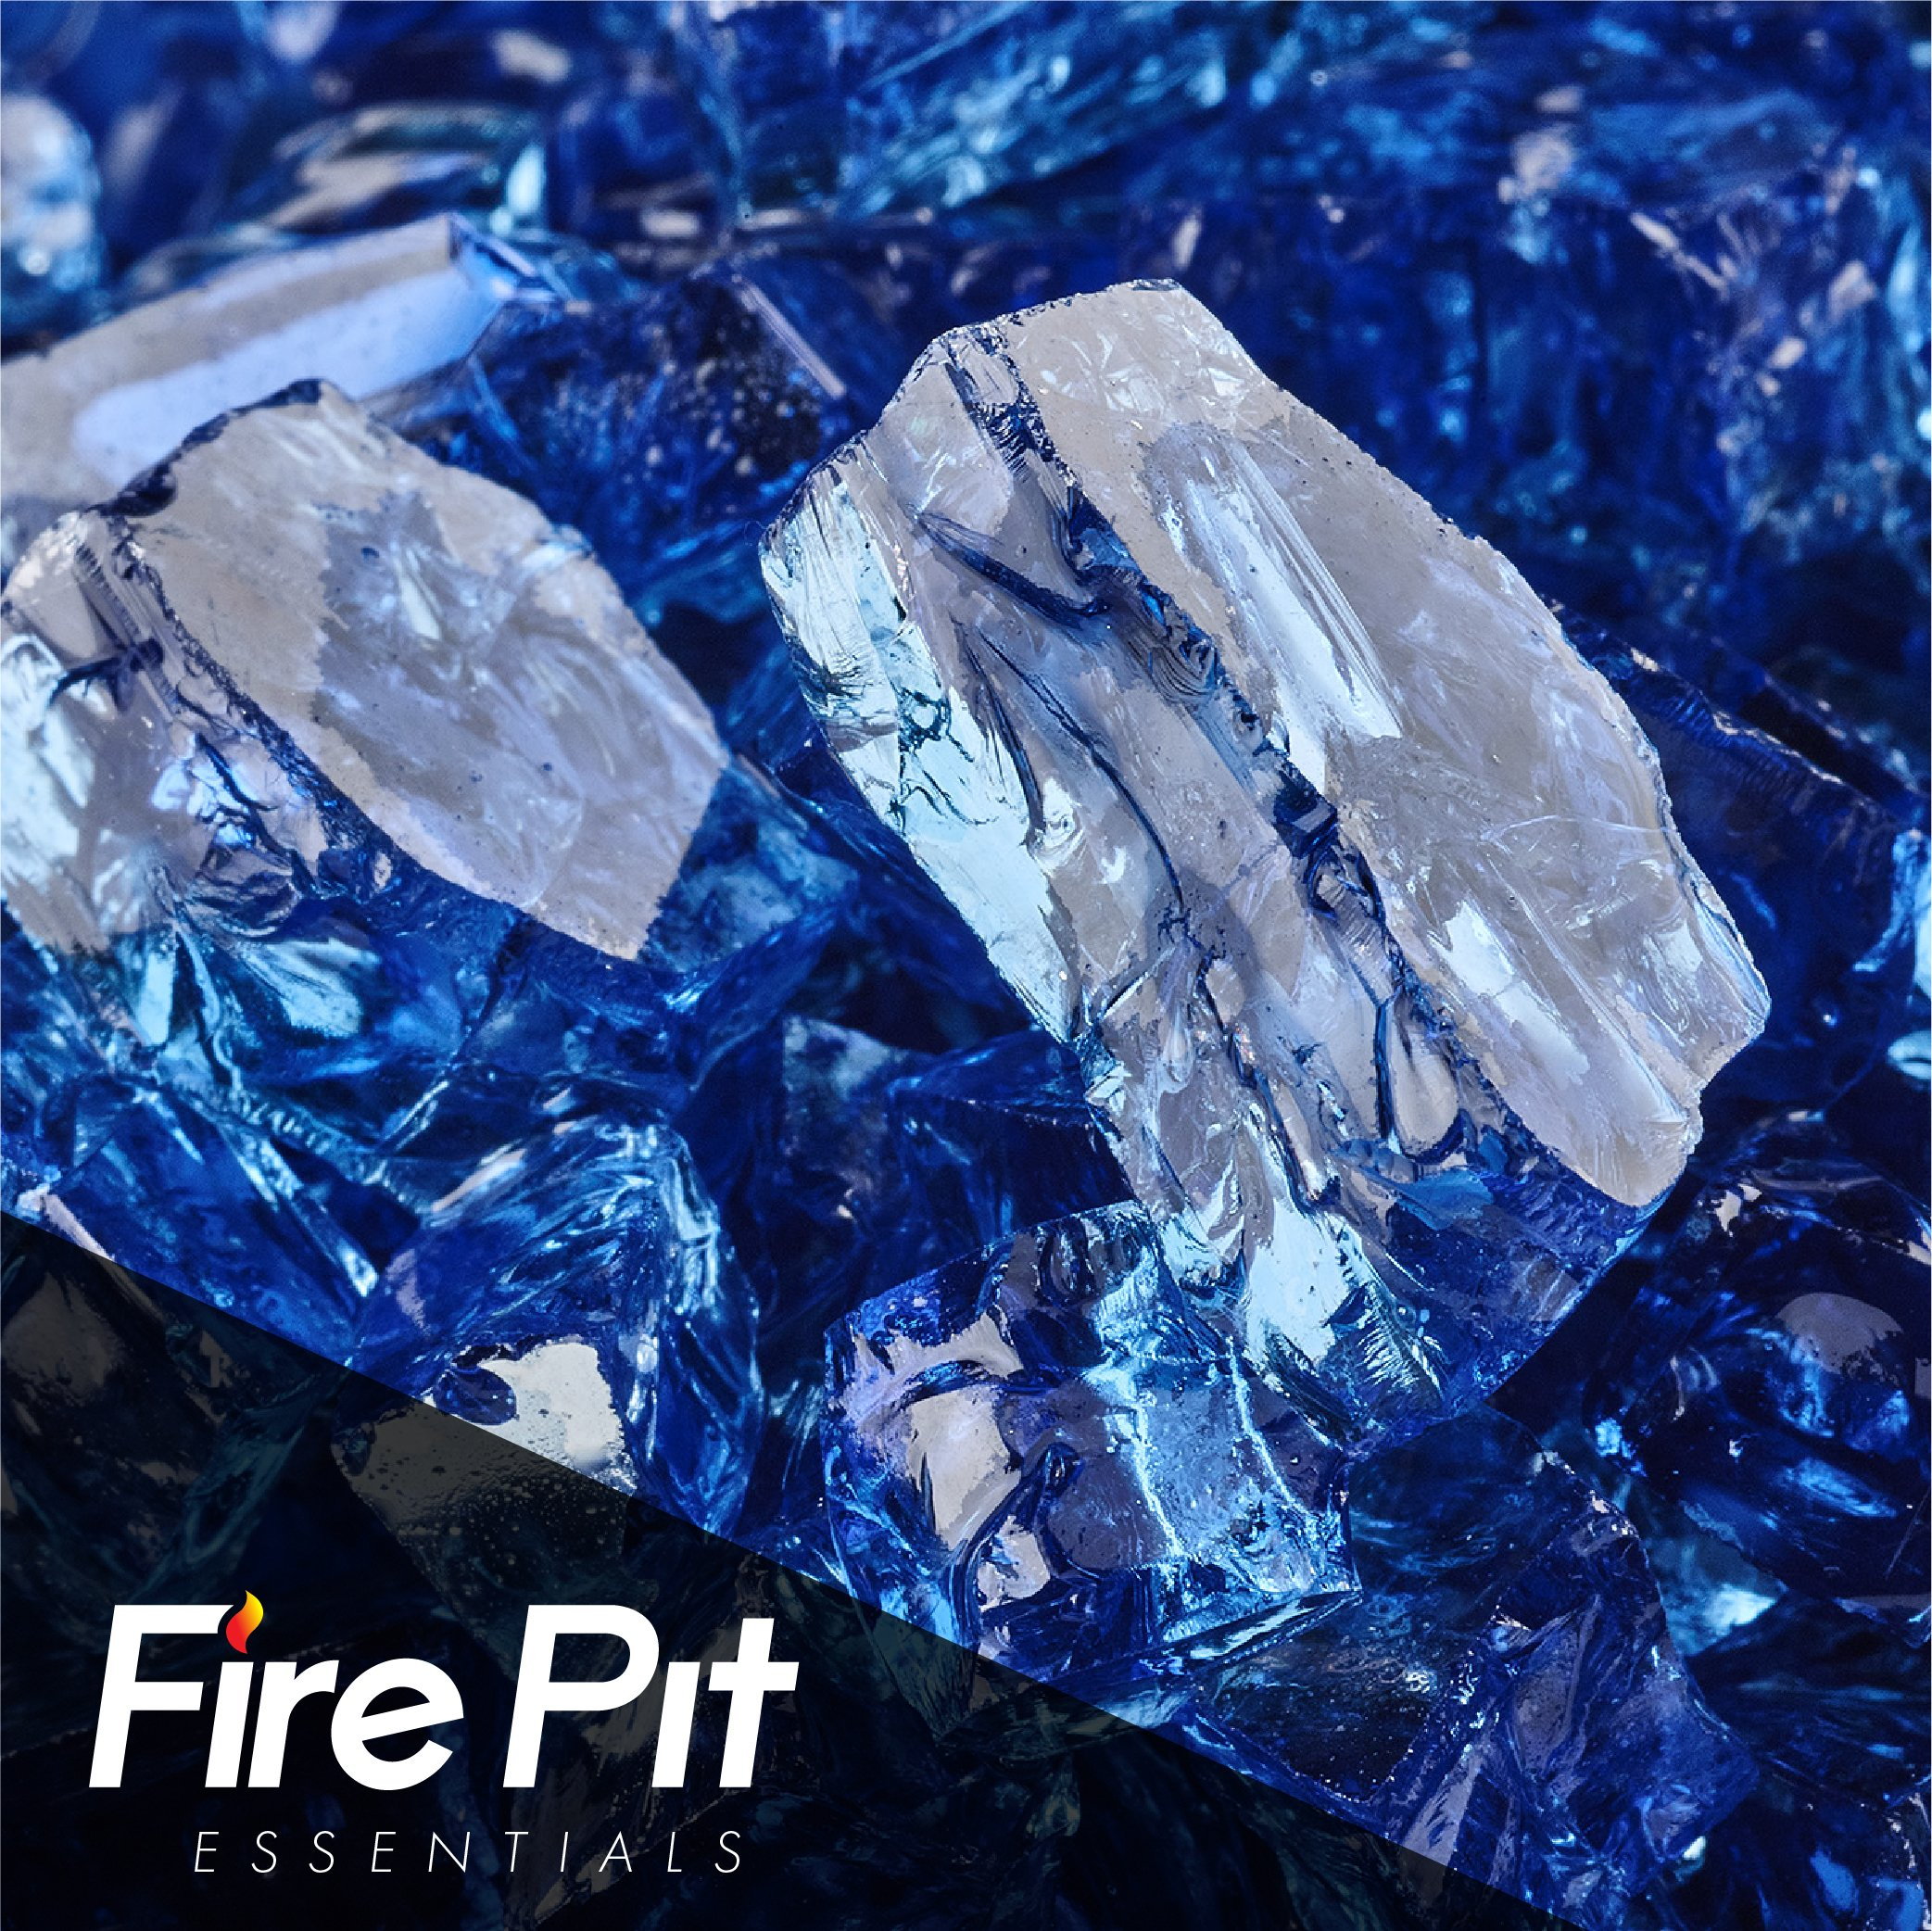 1/2'' Cobalt Blue Reflective Fire Glass for Fire Pit or Fireplace 10 Pounds of Fireglass